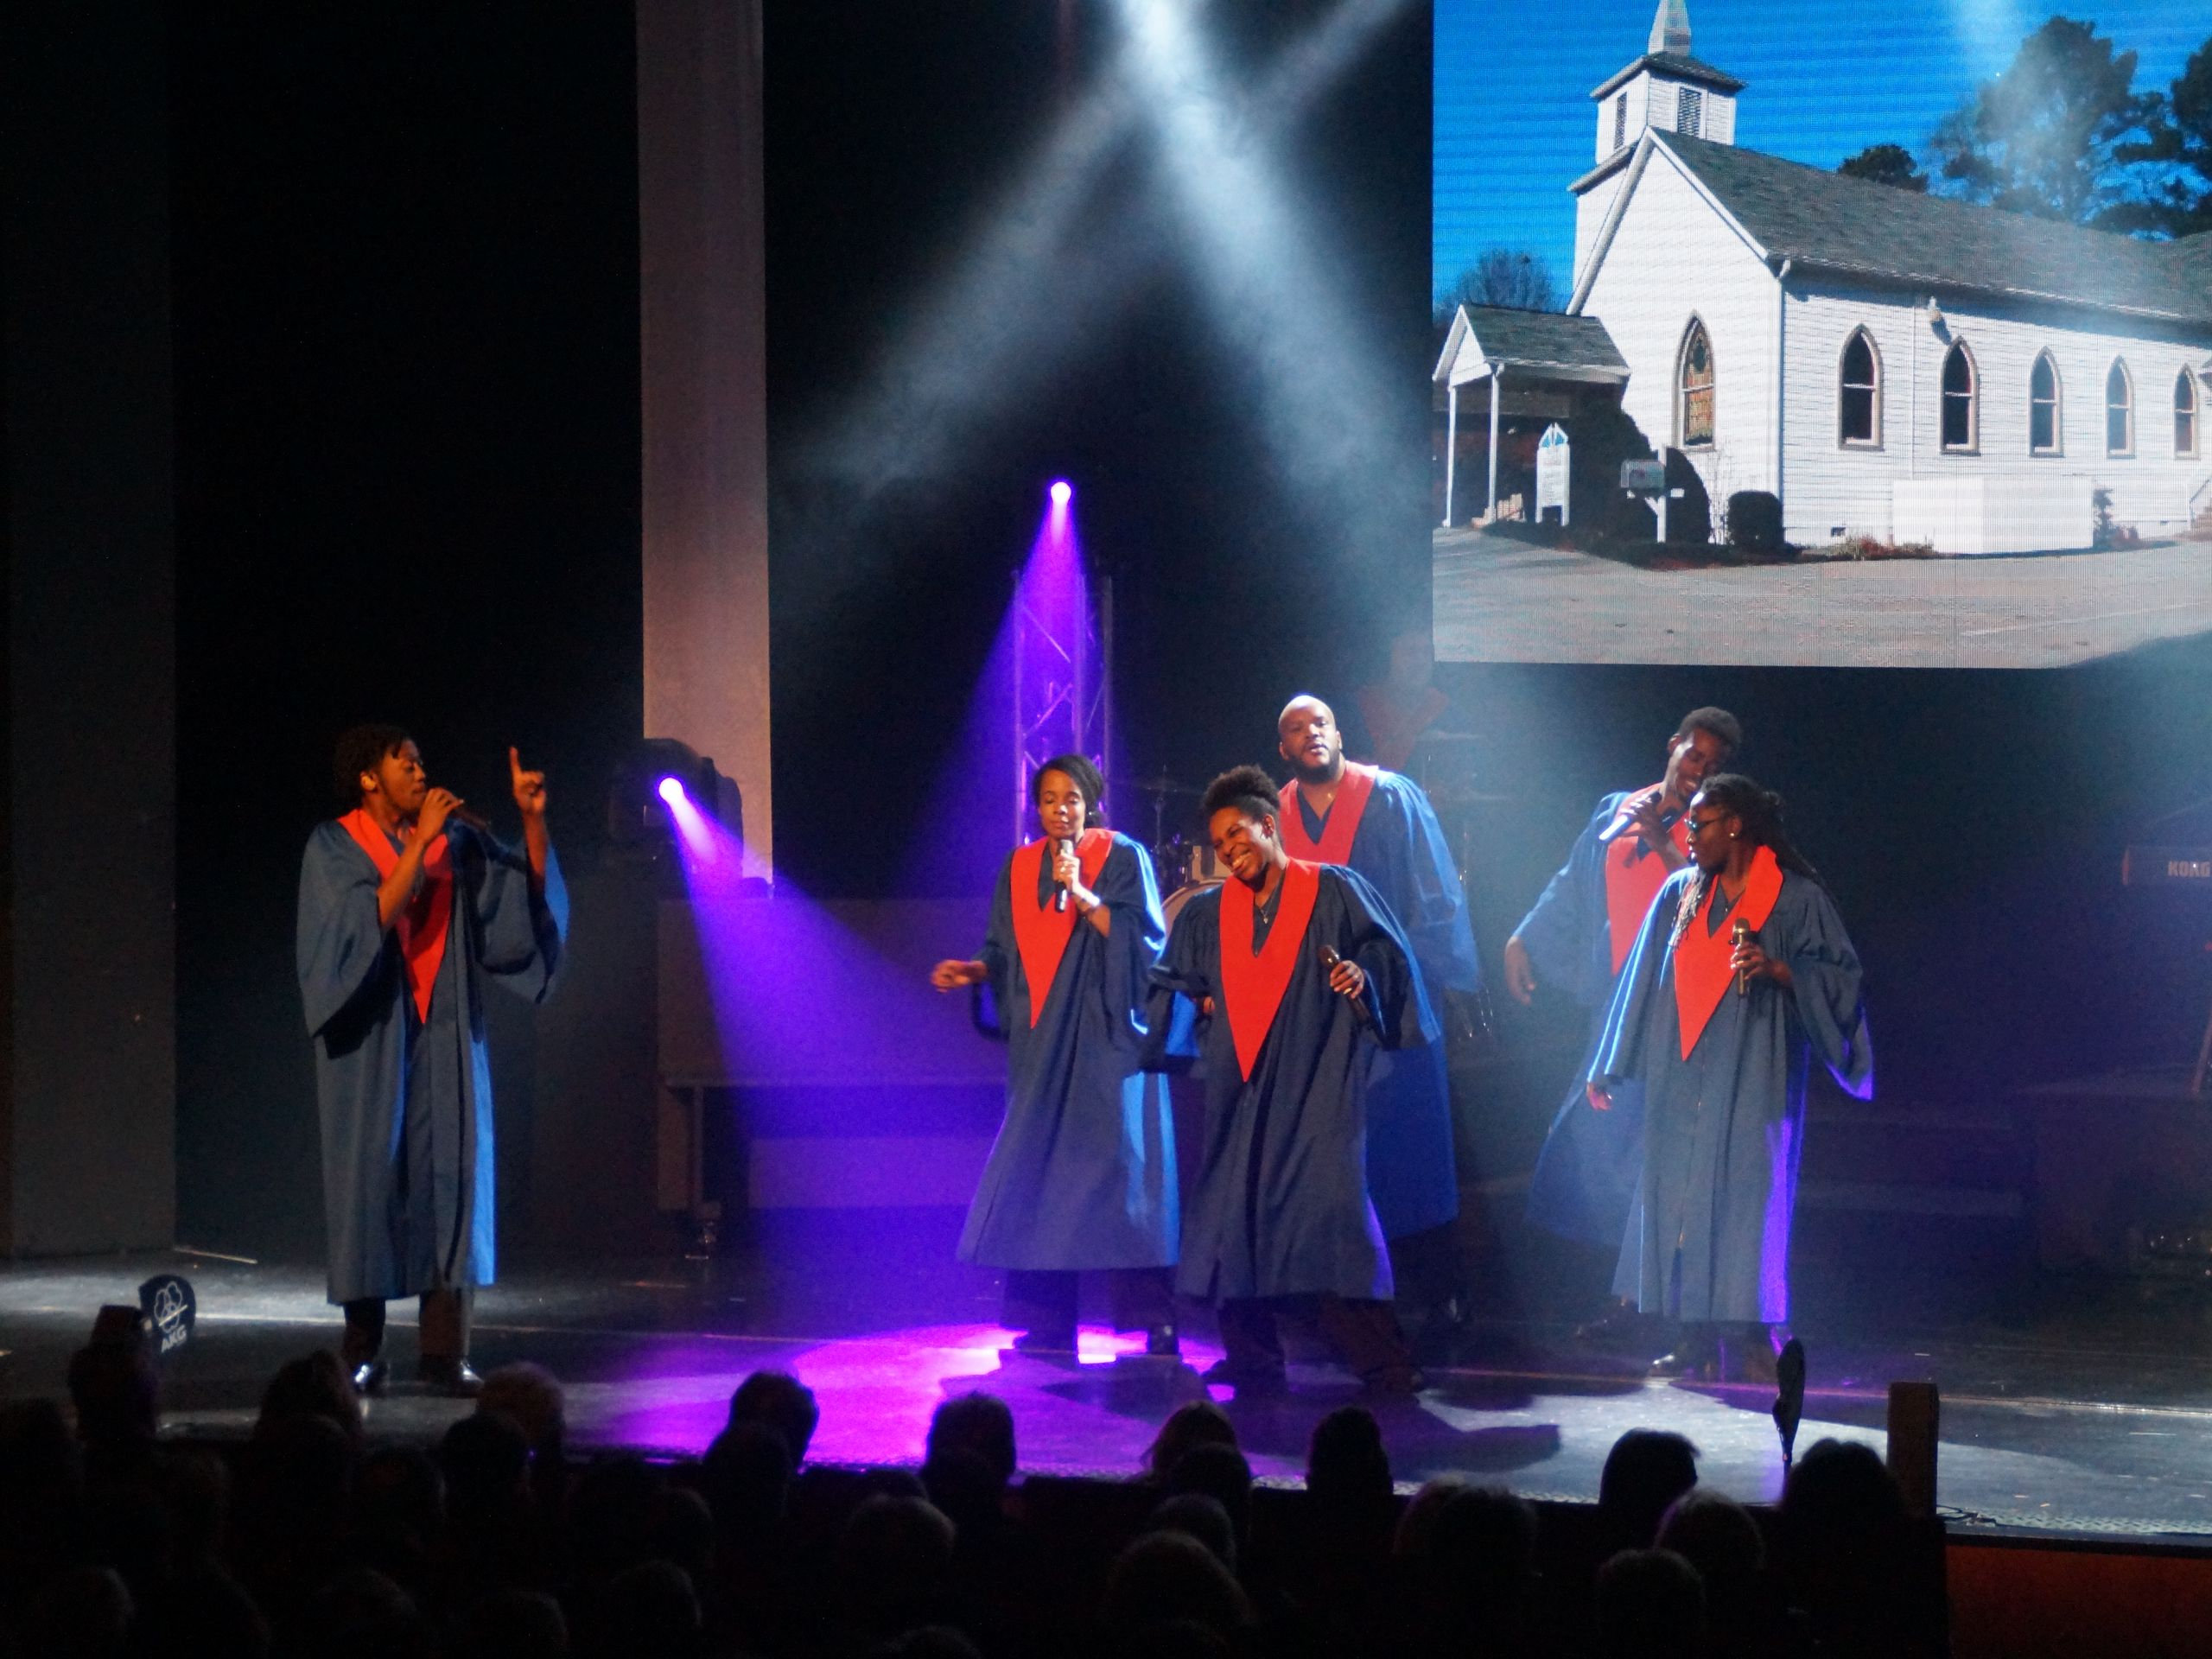 The USA Gospel Singers & Band